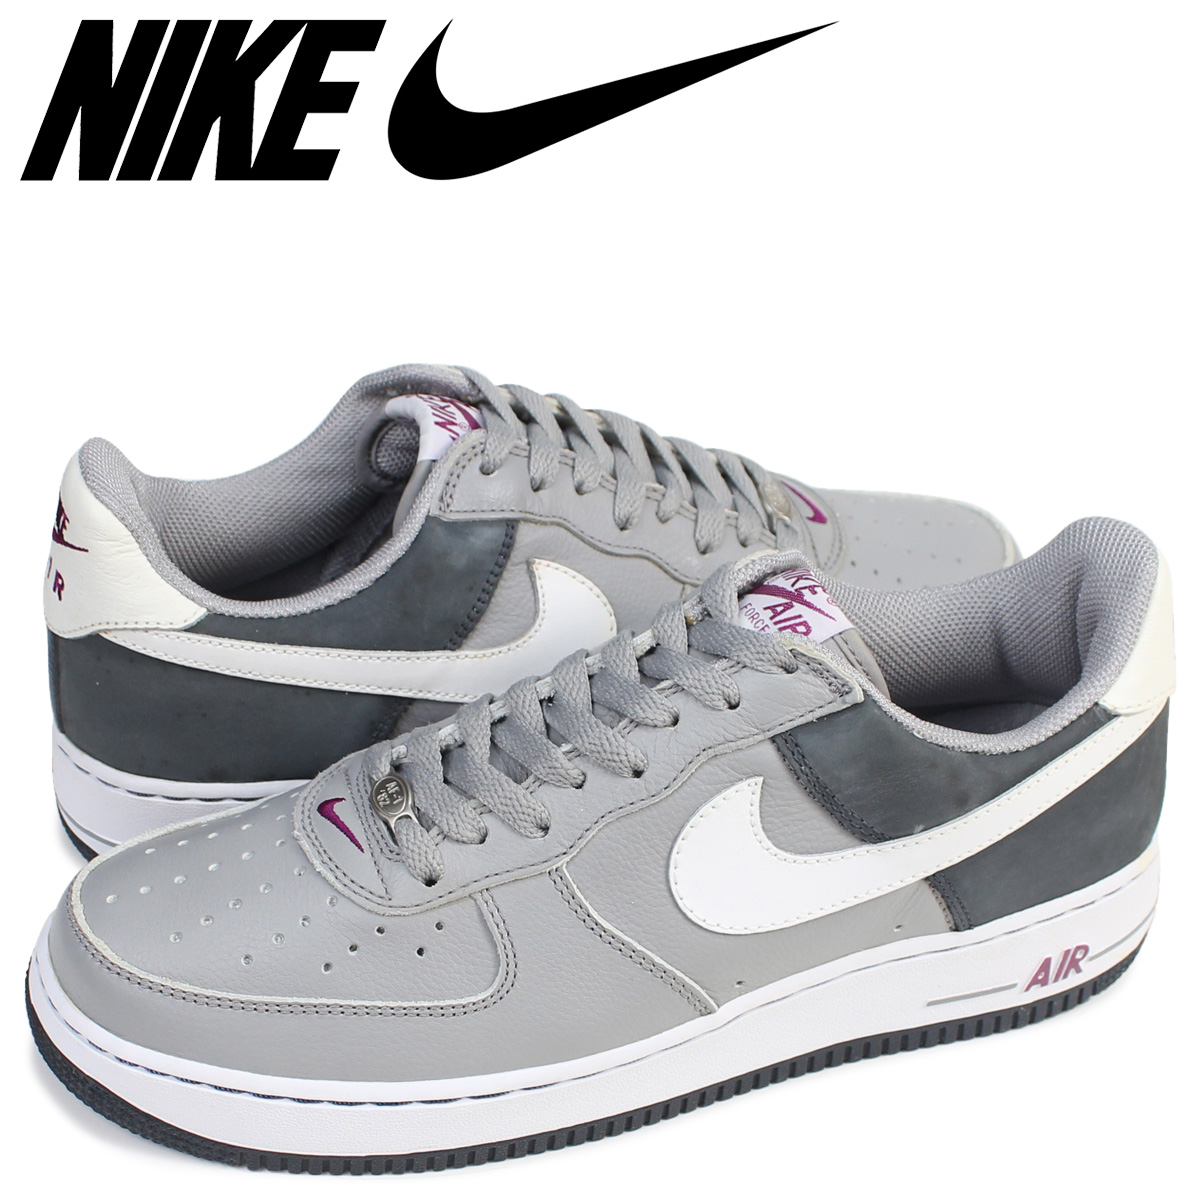 check-out 73958 faabd NIKE Nike air force 1 sneakers AIR FORCE 1 LOW JD 306,509-012 low men shoes  gray